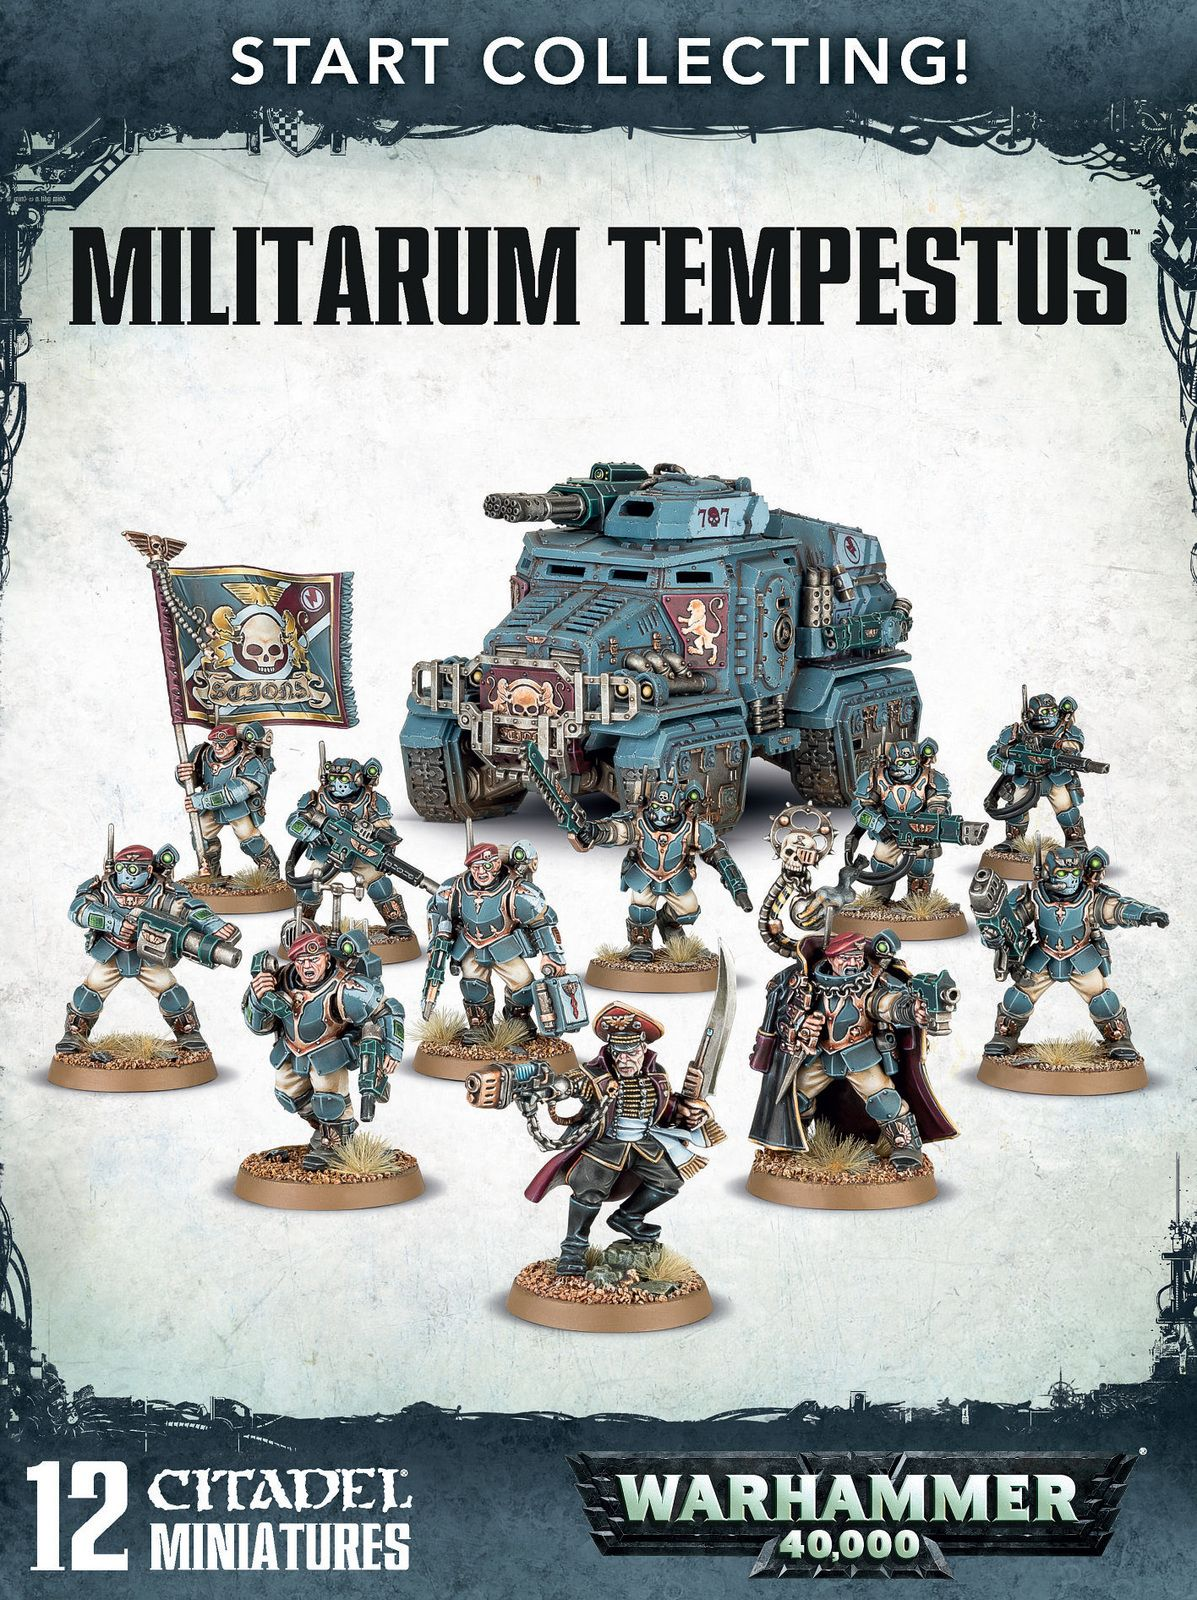 Start Collecting! Militarum Tempestus Miniatures, Game